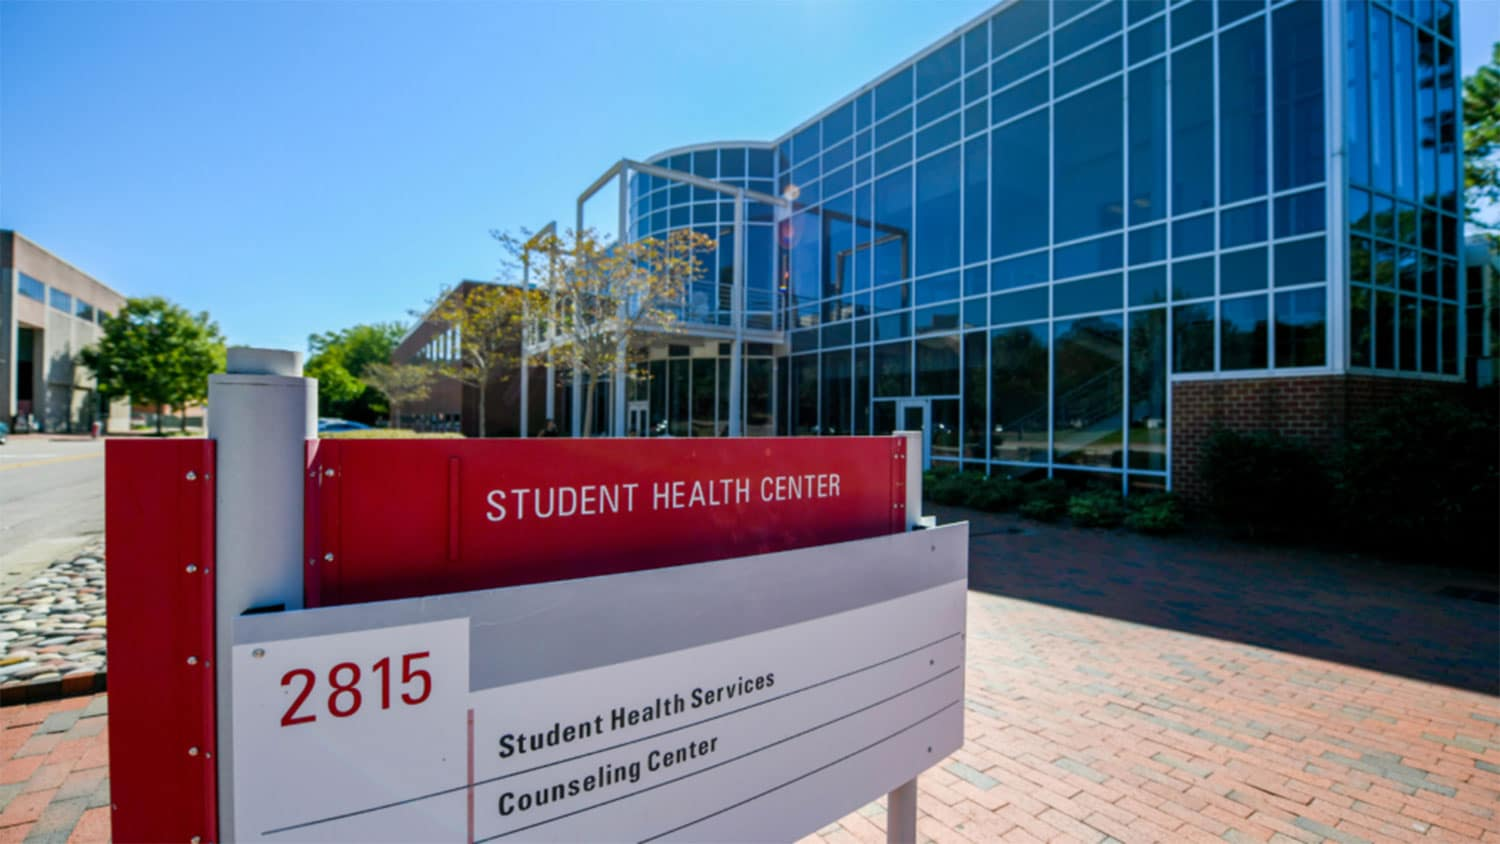 NC State Student Health Center building